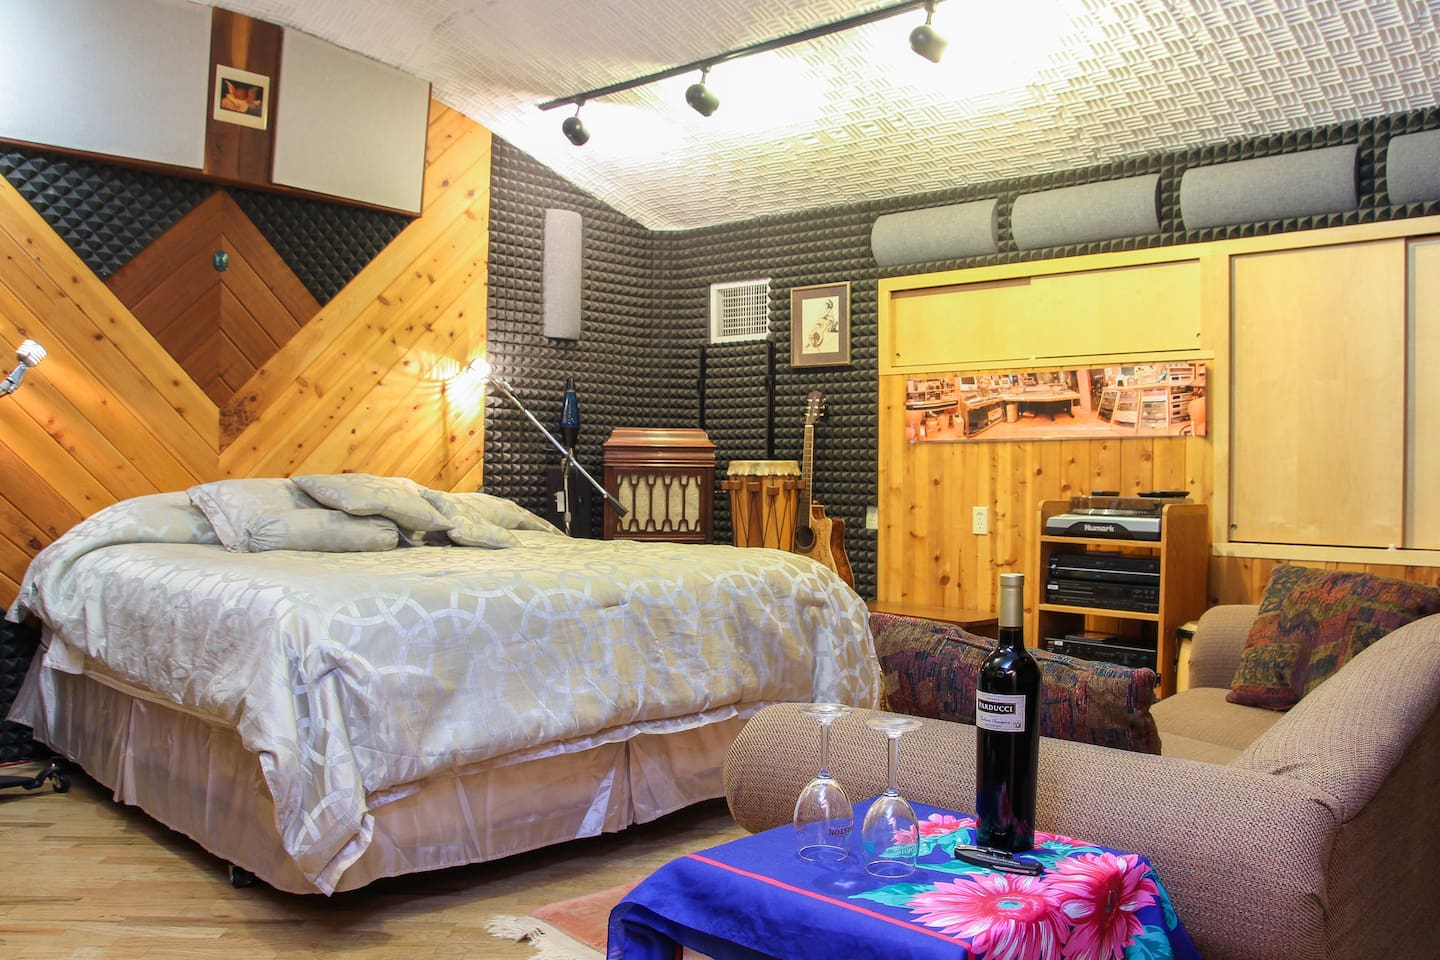 Soundproof Control Room with CA King Bed